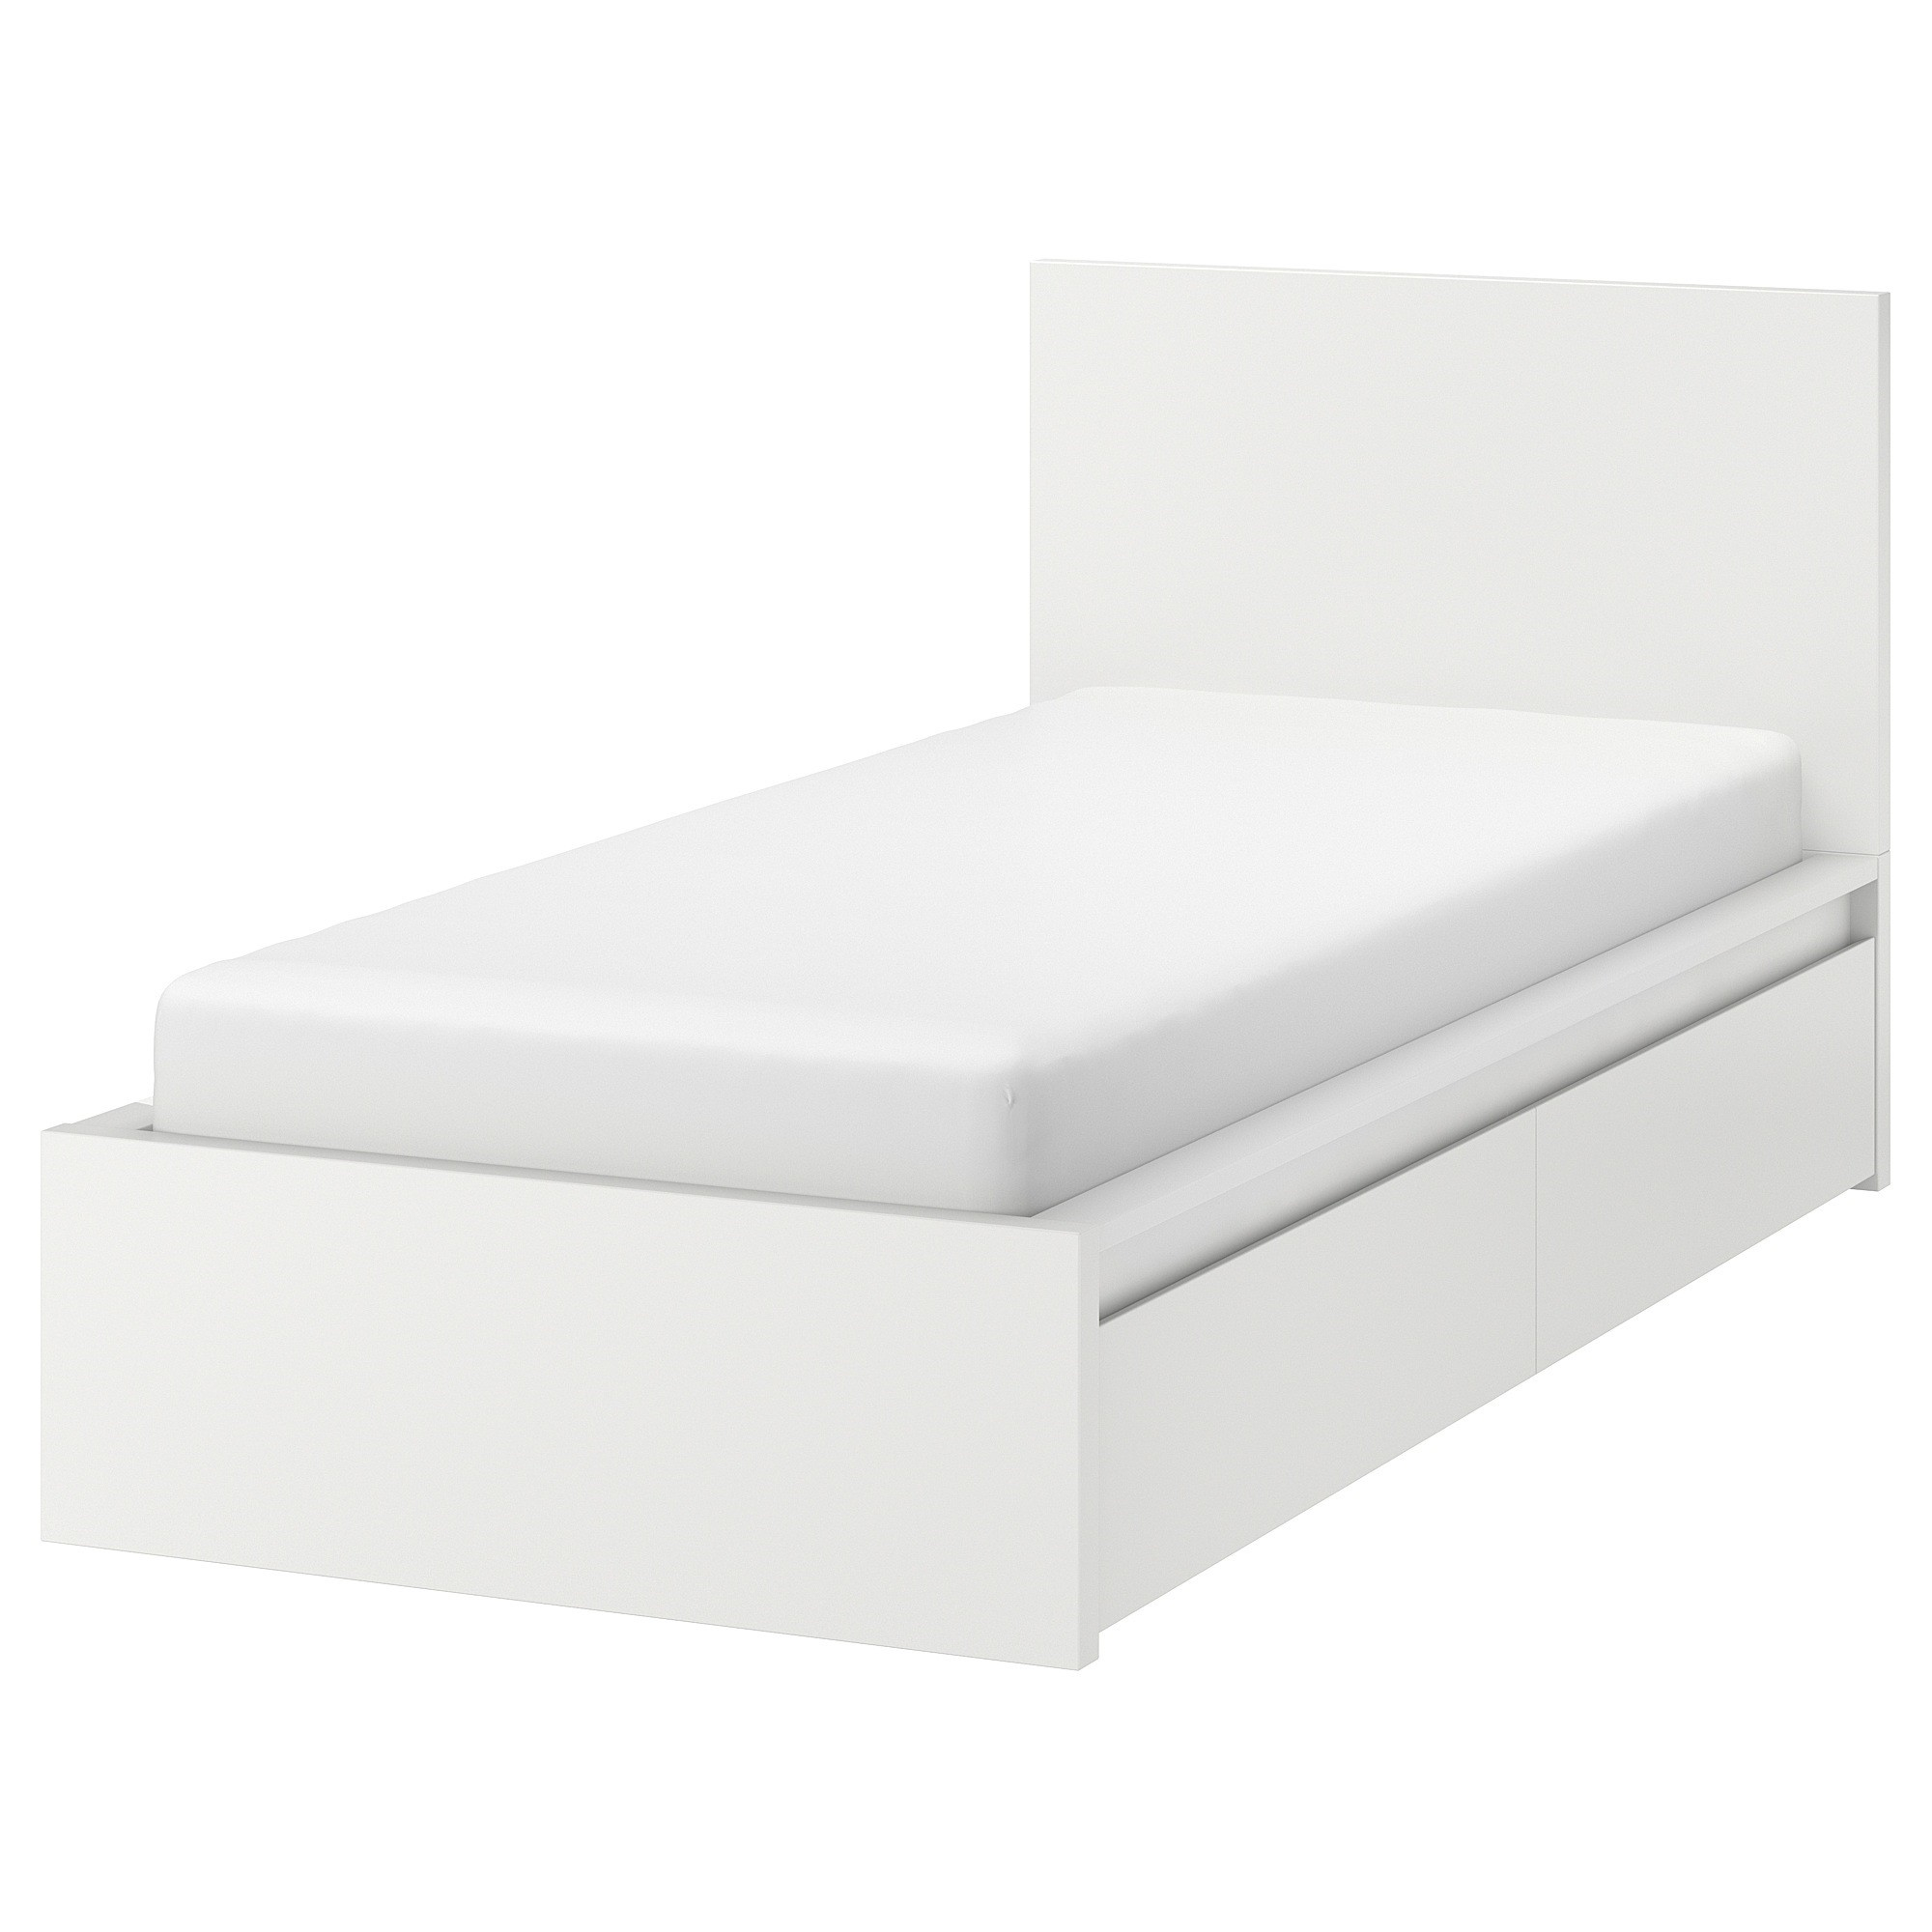 Malm Bed Frame High With 2 Storage Boxes Luroy Single Size White Conner Furniture House